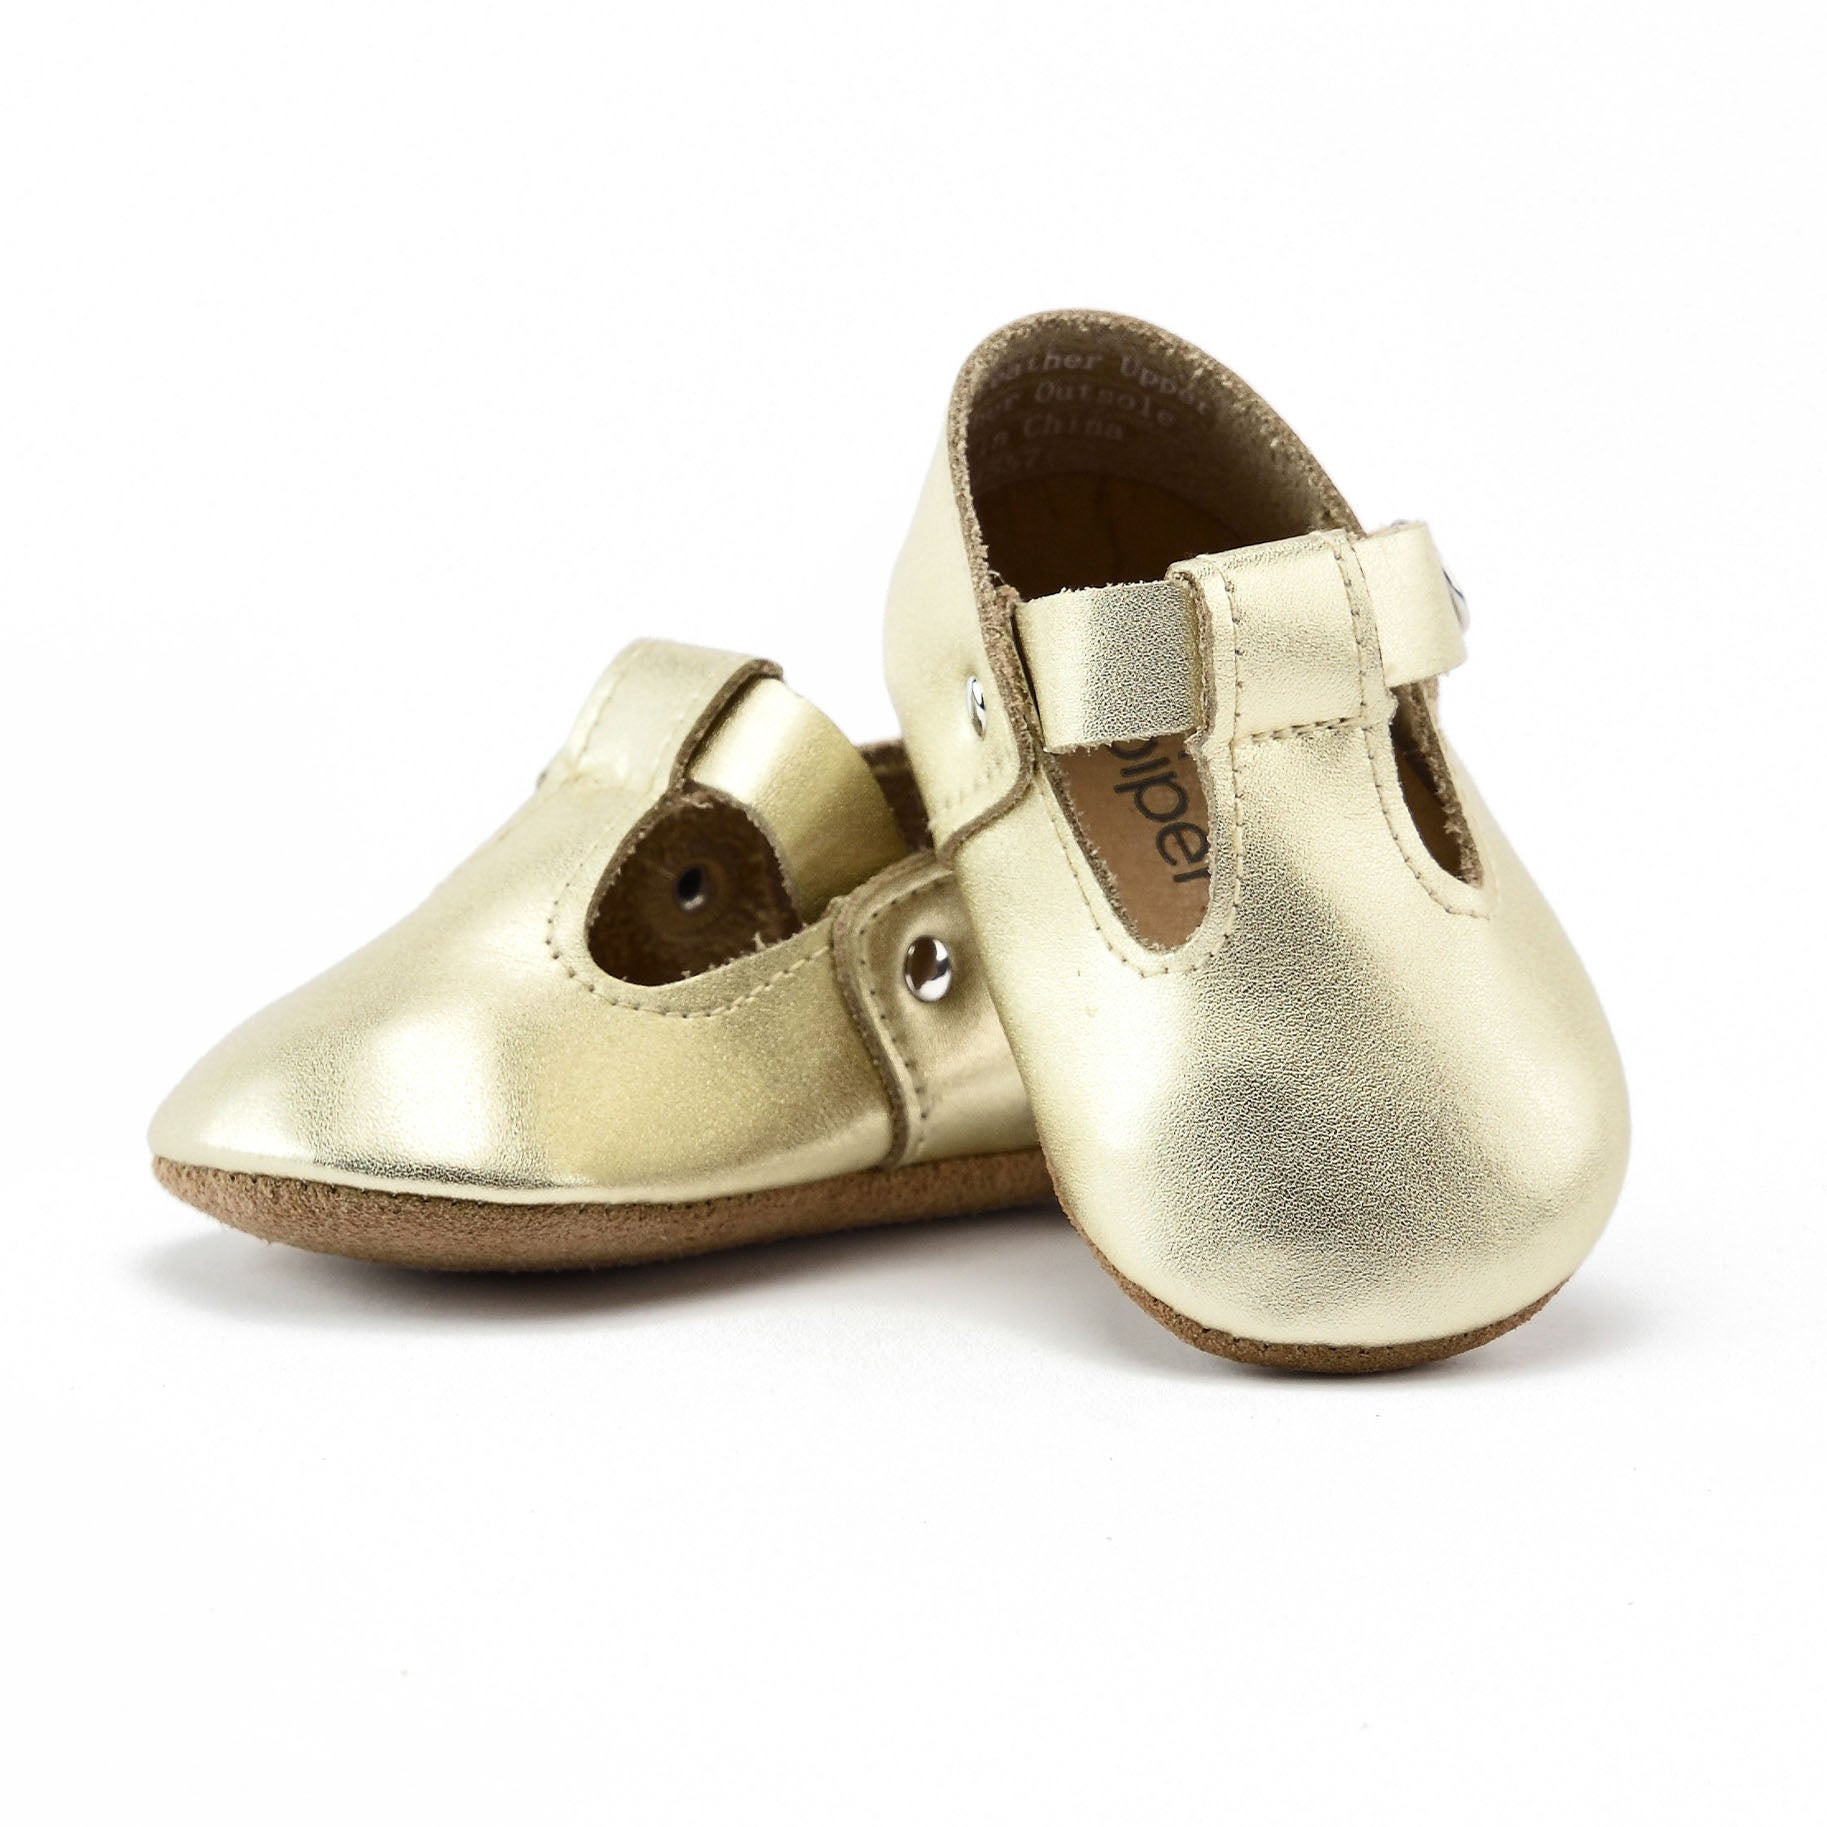 Goldie - T-Strap Mary Jane - Soft Sole